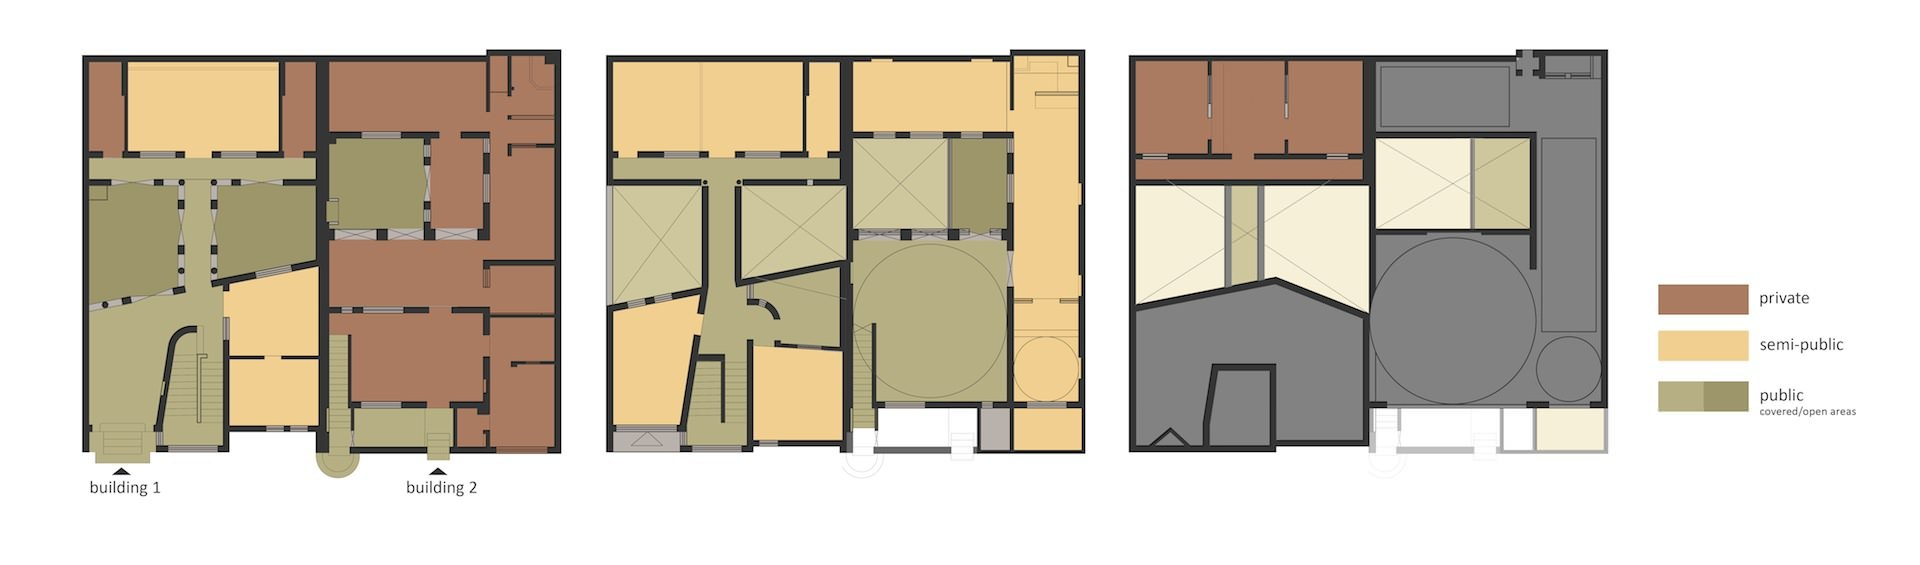 Plans of the existing buildings. (Image: Lotus Design)